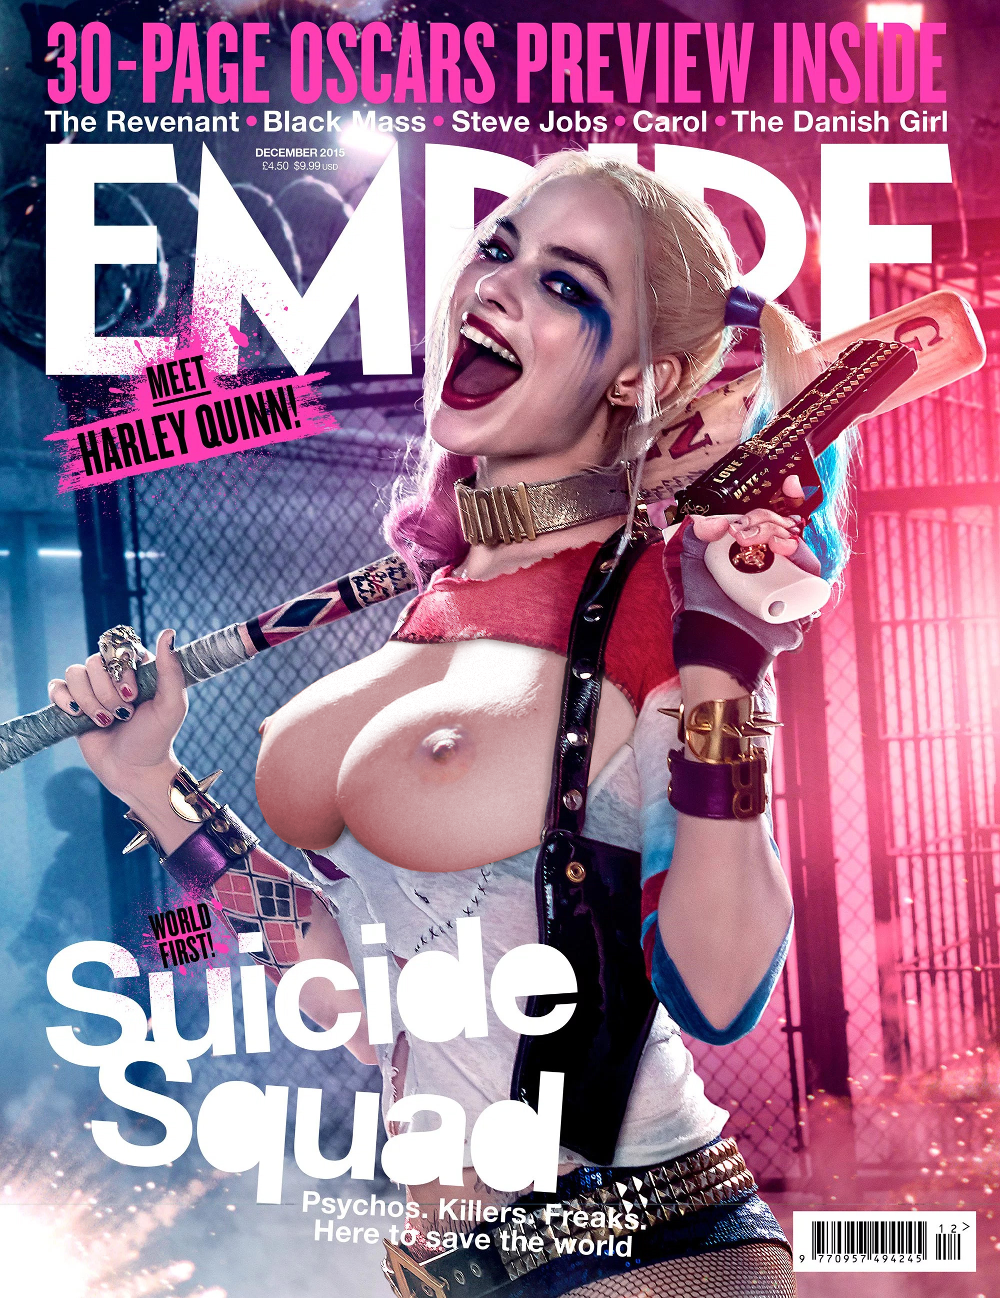 hentai squad suicide harley quinn The fears guide to making